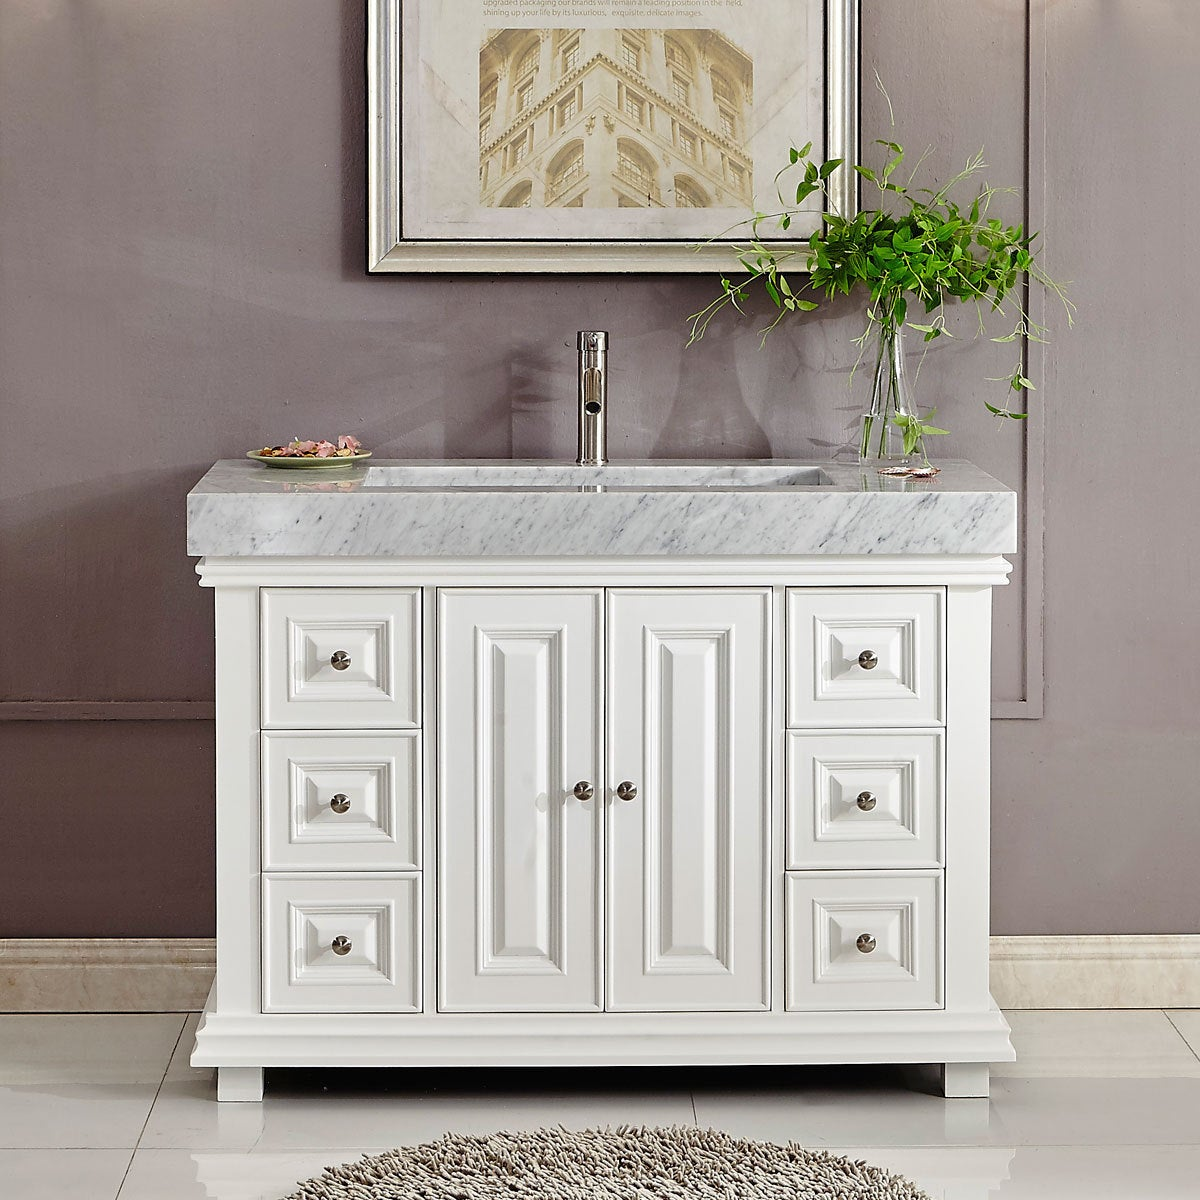 Shop Silkroad Exclusive 48 Inch Contemporary Bathroom Vanity Single Sink  Cabinet W/ Soft Close   Free Shipping Today   Overstock.com   14443140